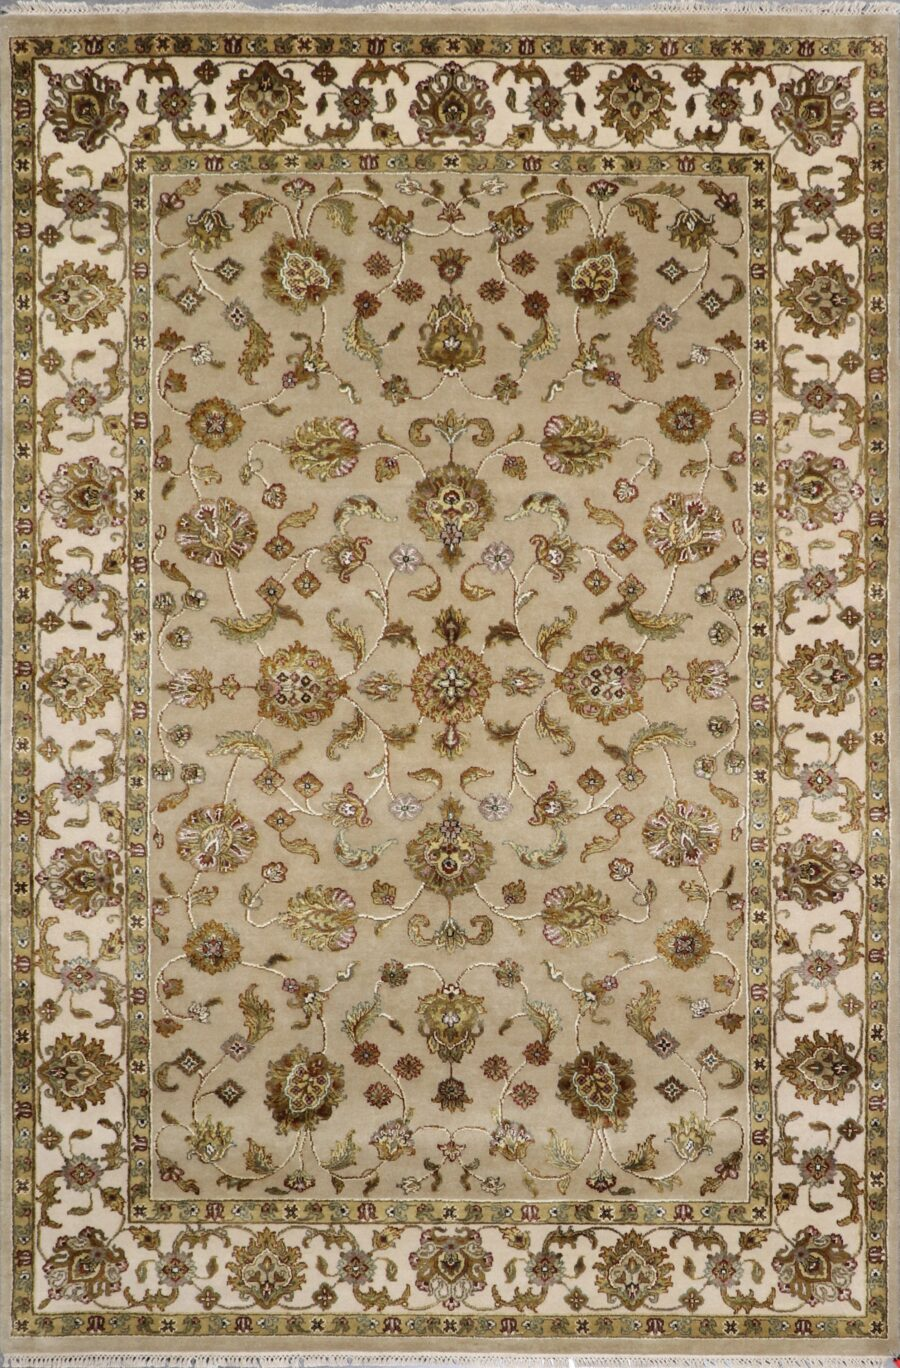 """6'x8'11"""" Traditional Tan Tabriz Wool & Silk Hand-Knotted Rug - Direct Rug Import   Rugs in Chicago, Indiana,South Bend,Granger"""